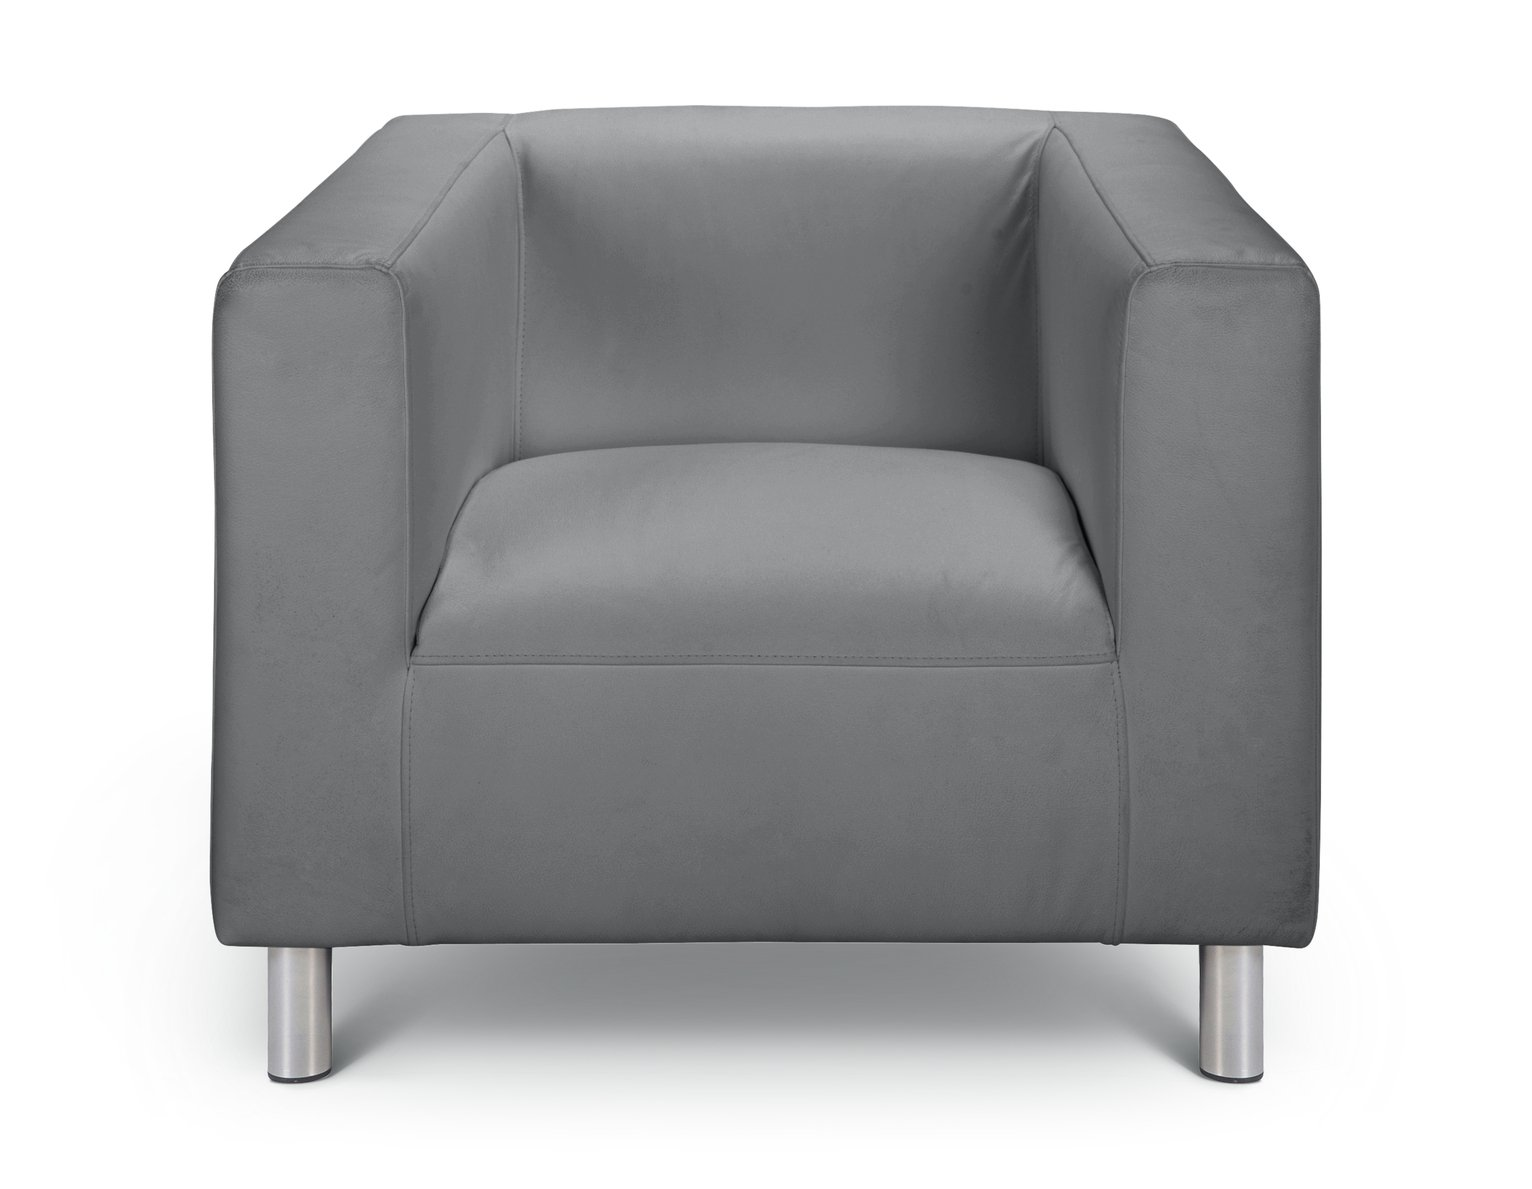 Argos Home Moda Faux Leather Armchair - Grey